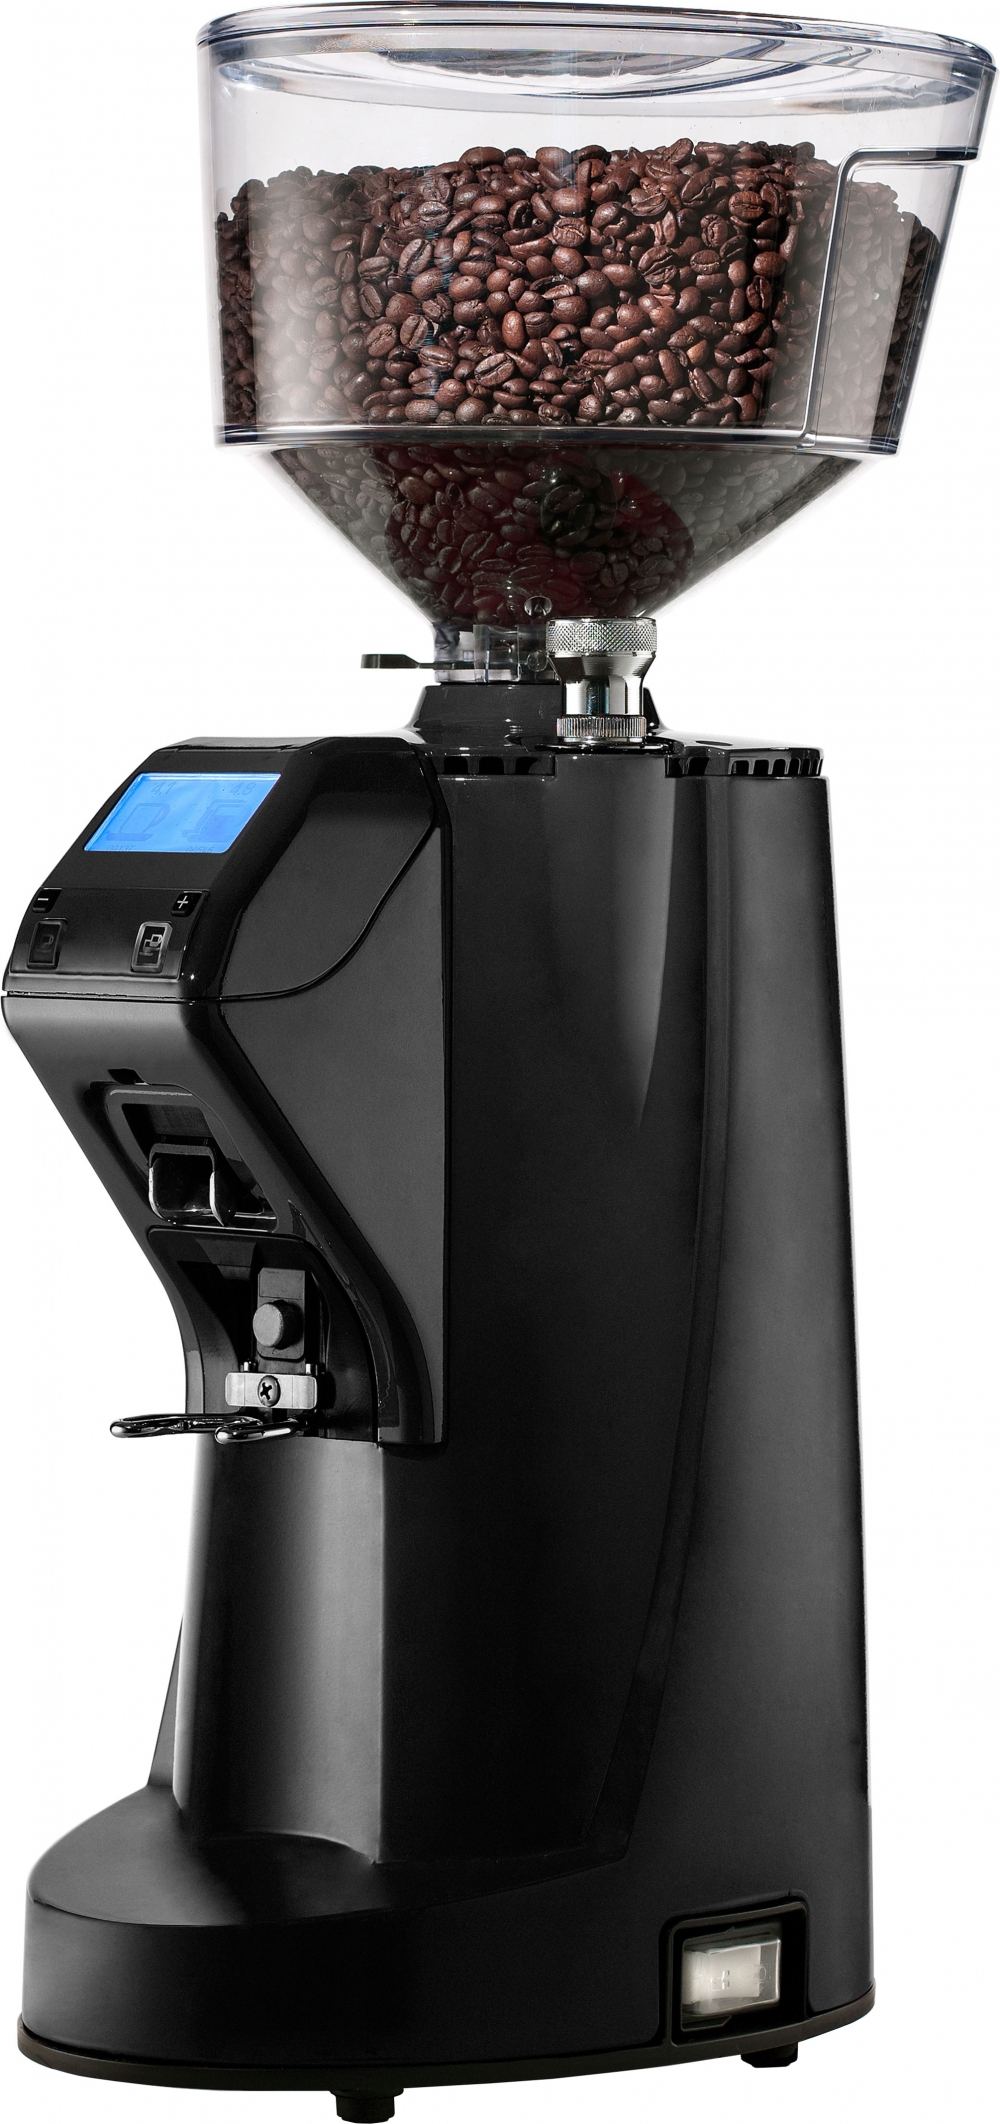 Кофемолка Nuova Simonelli MDJ On Demand?>